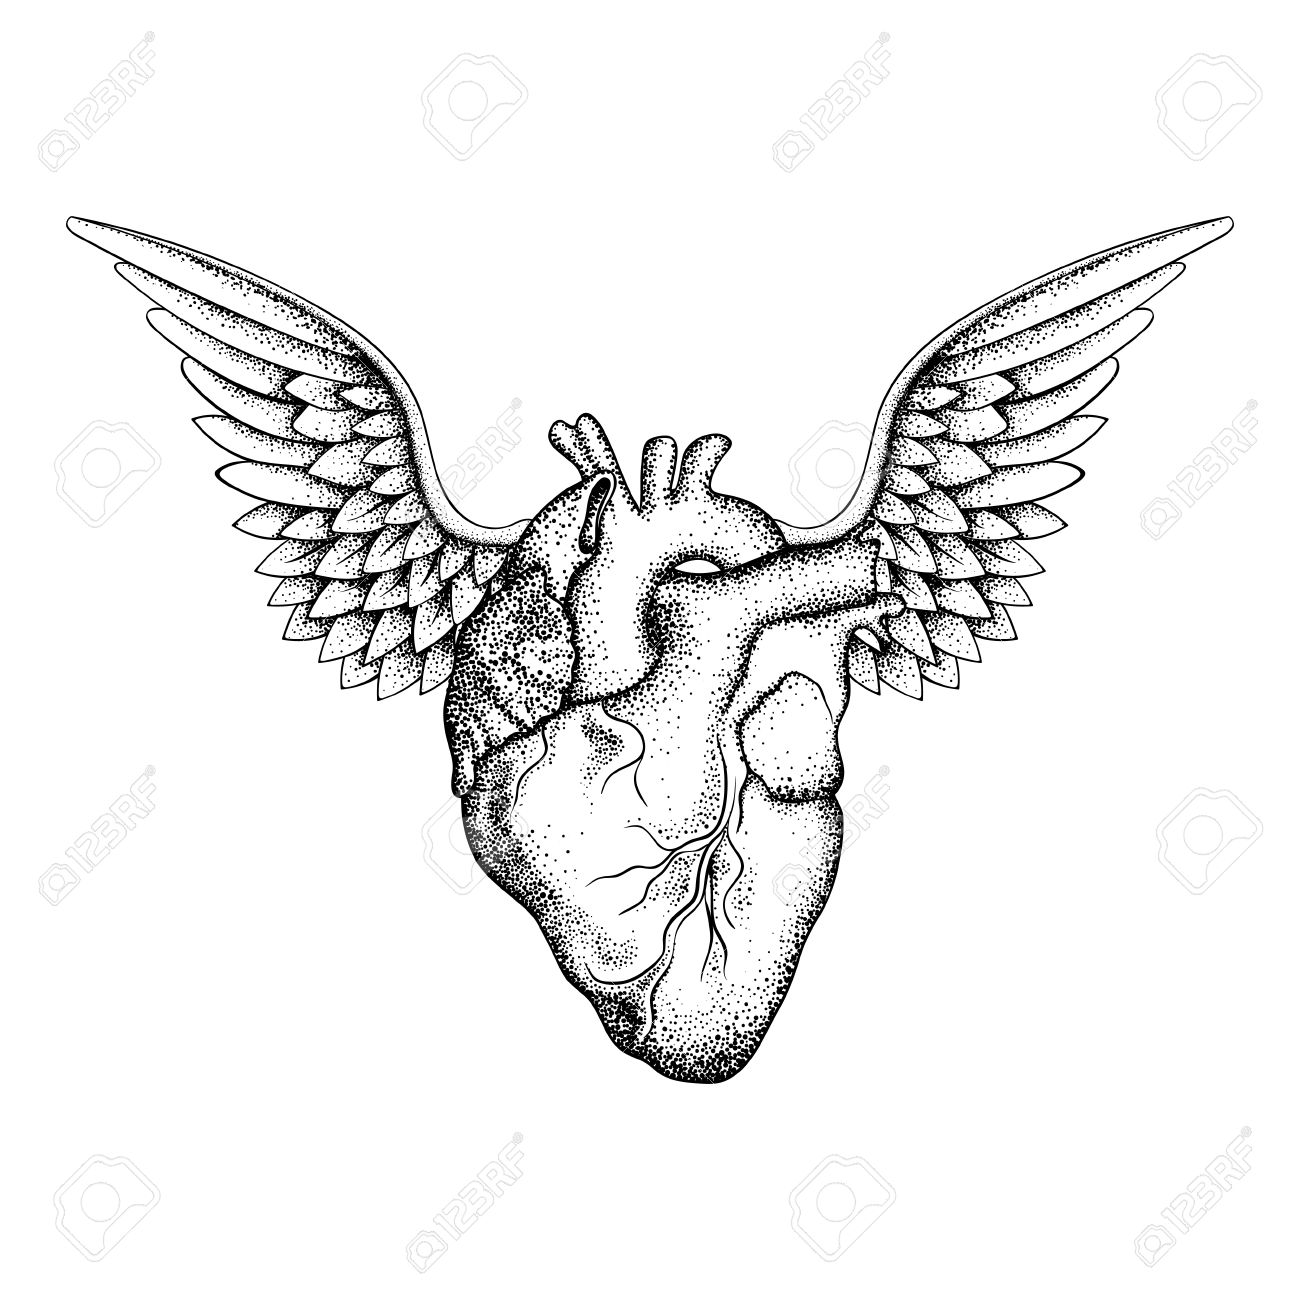 1300x1300 Hand Drawn Elegant Heart With Wings, Black Sketch For T Shirt